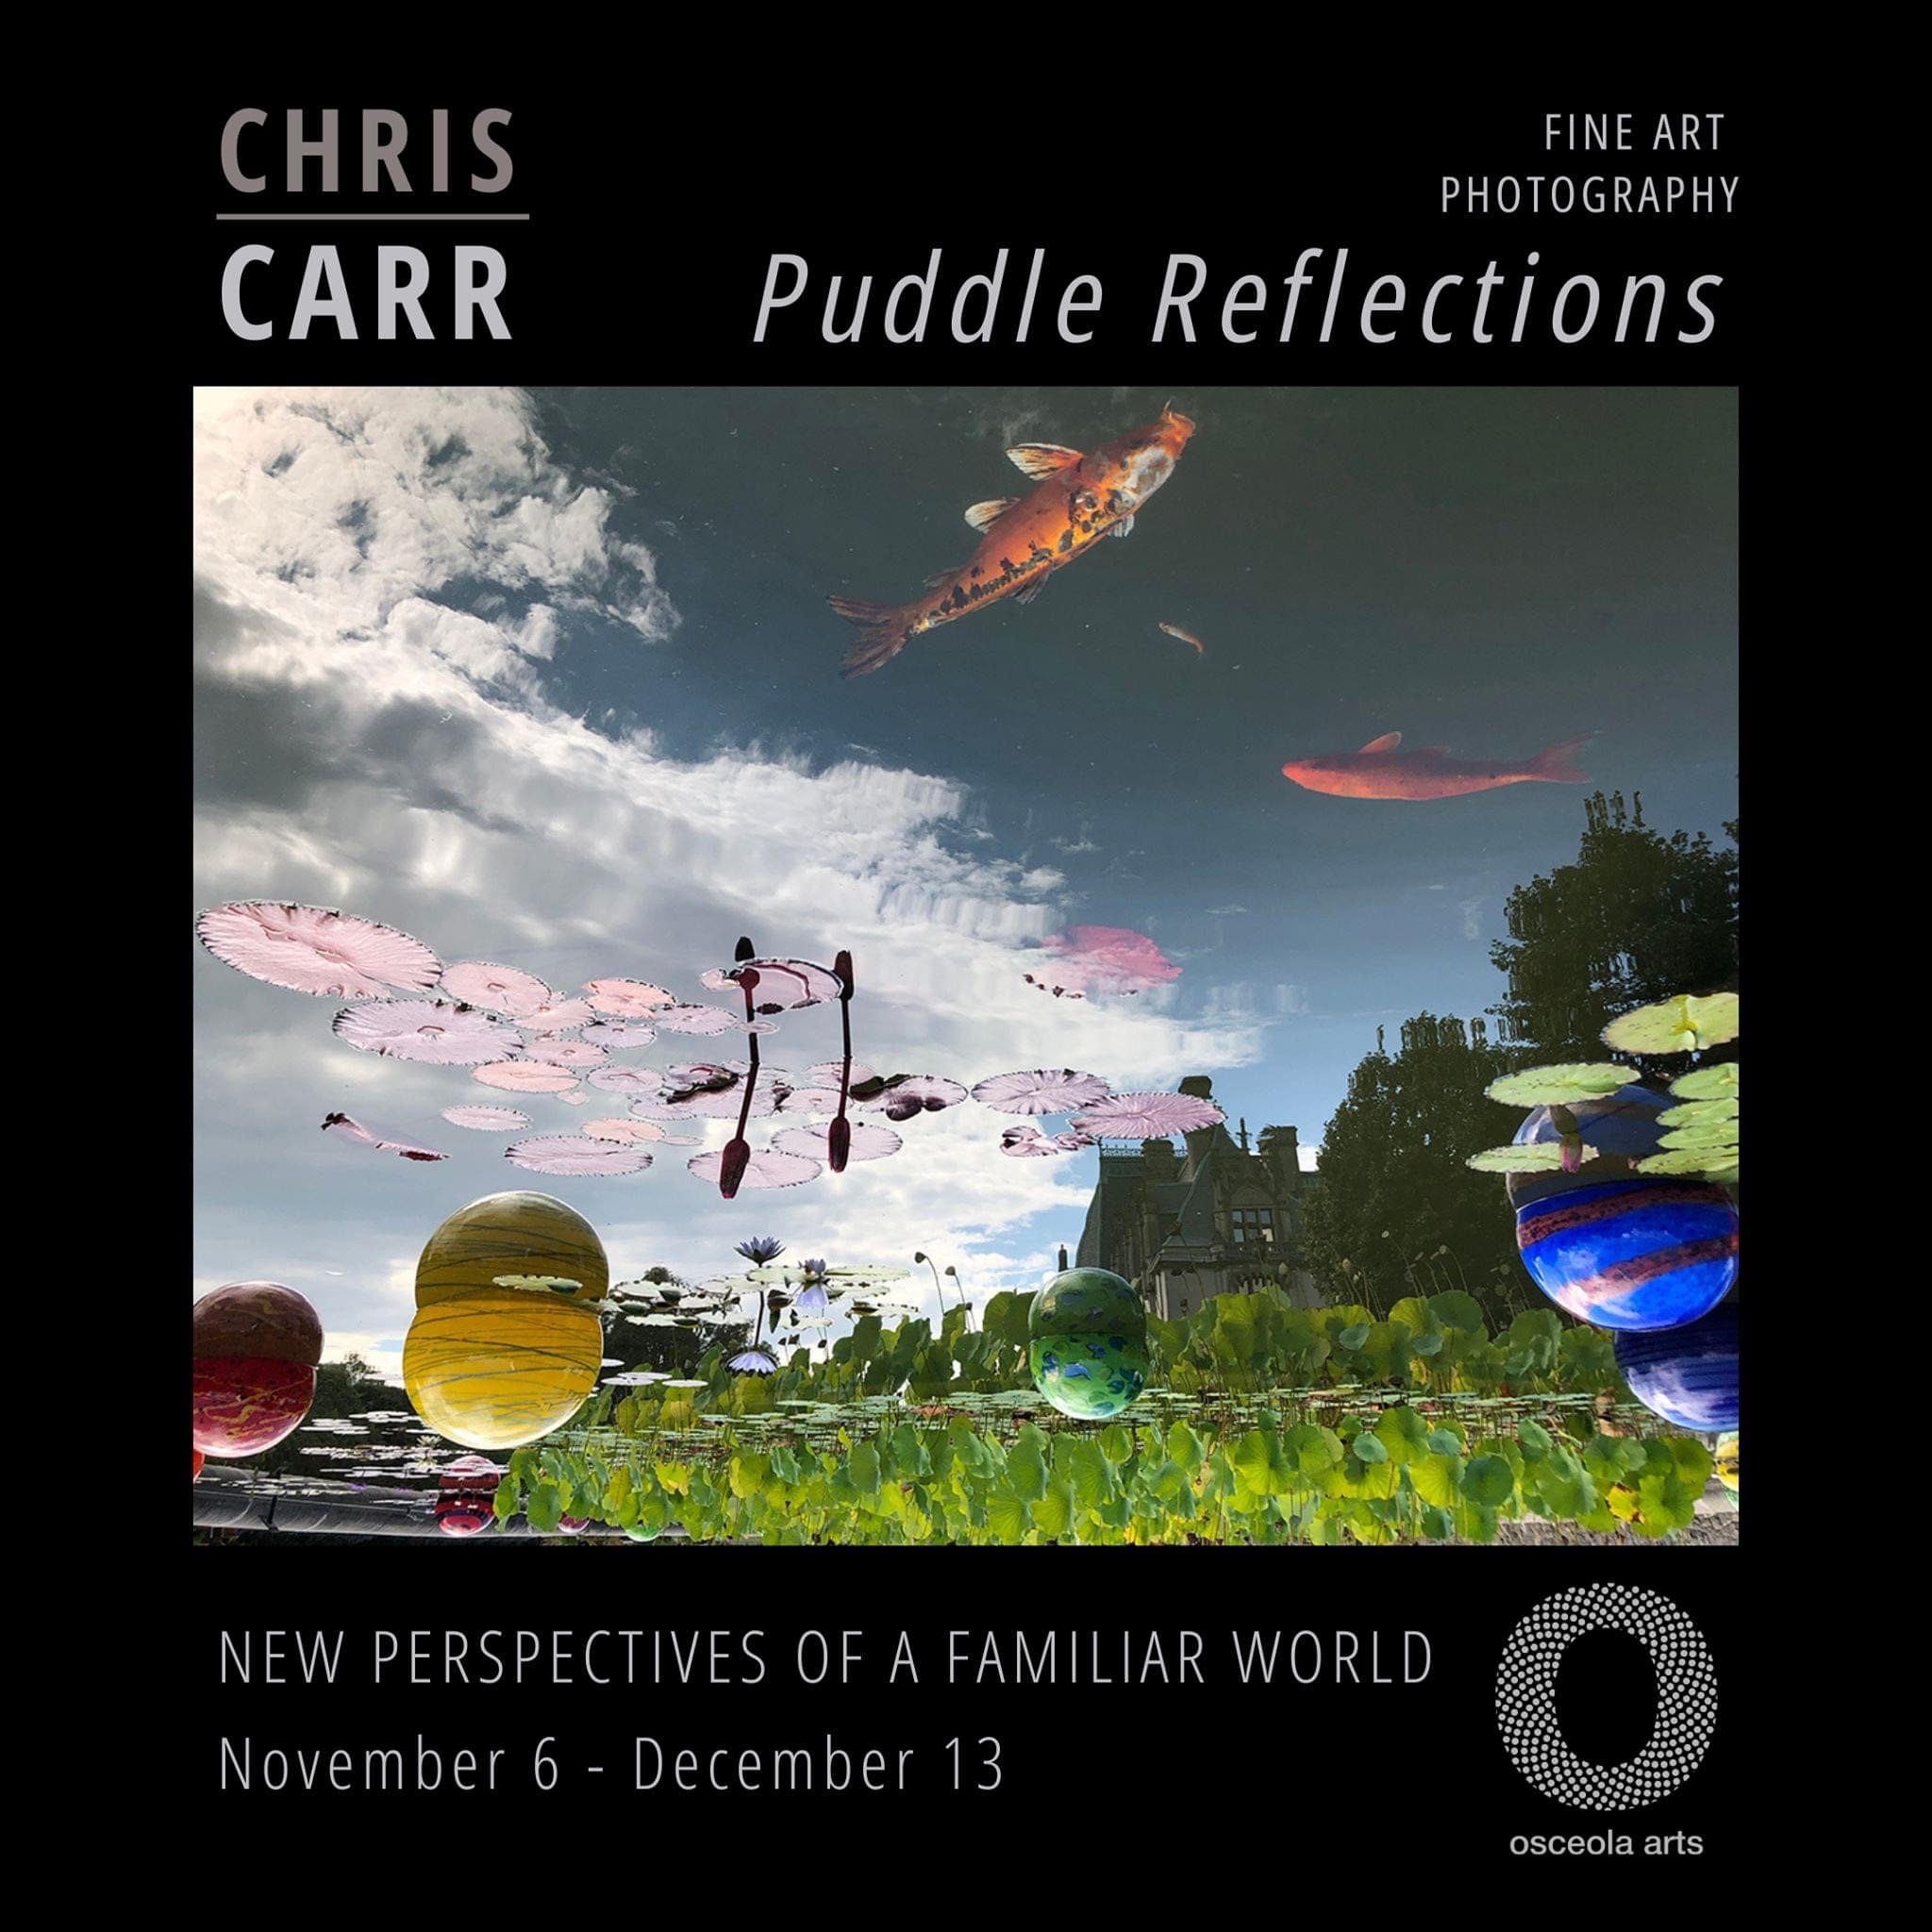 Puddle Reflections: Fine Art Photography by Chris Carr